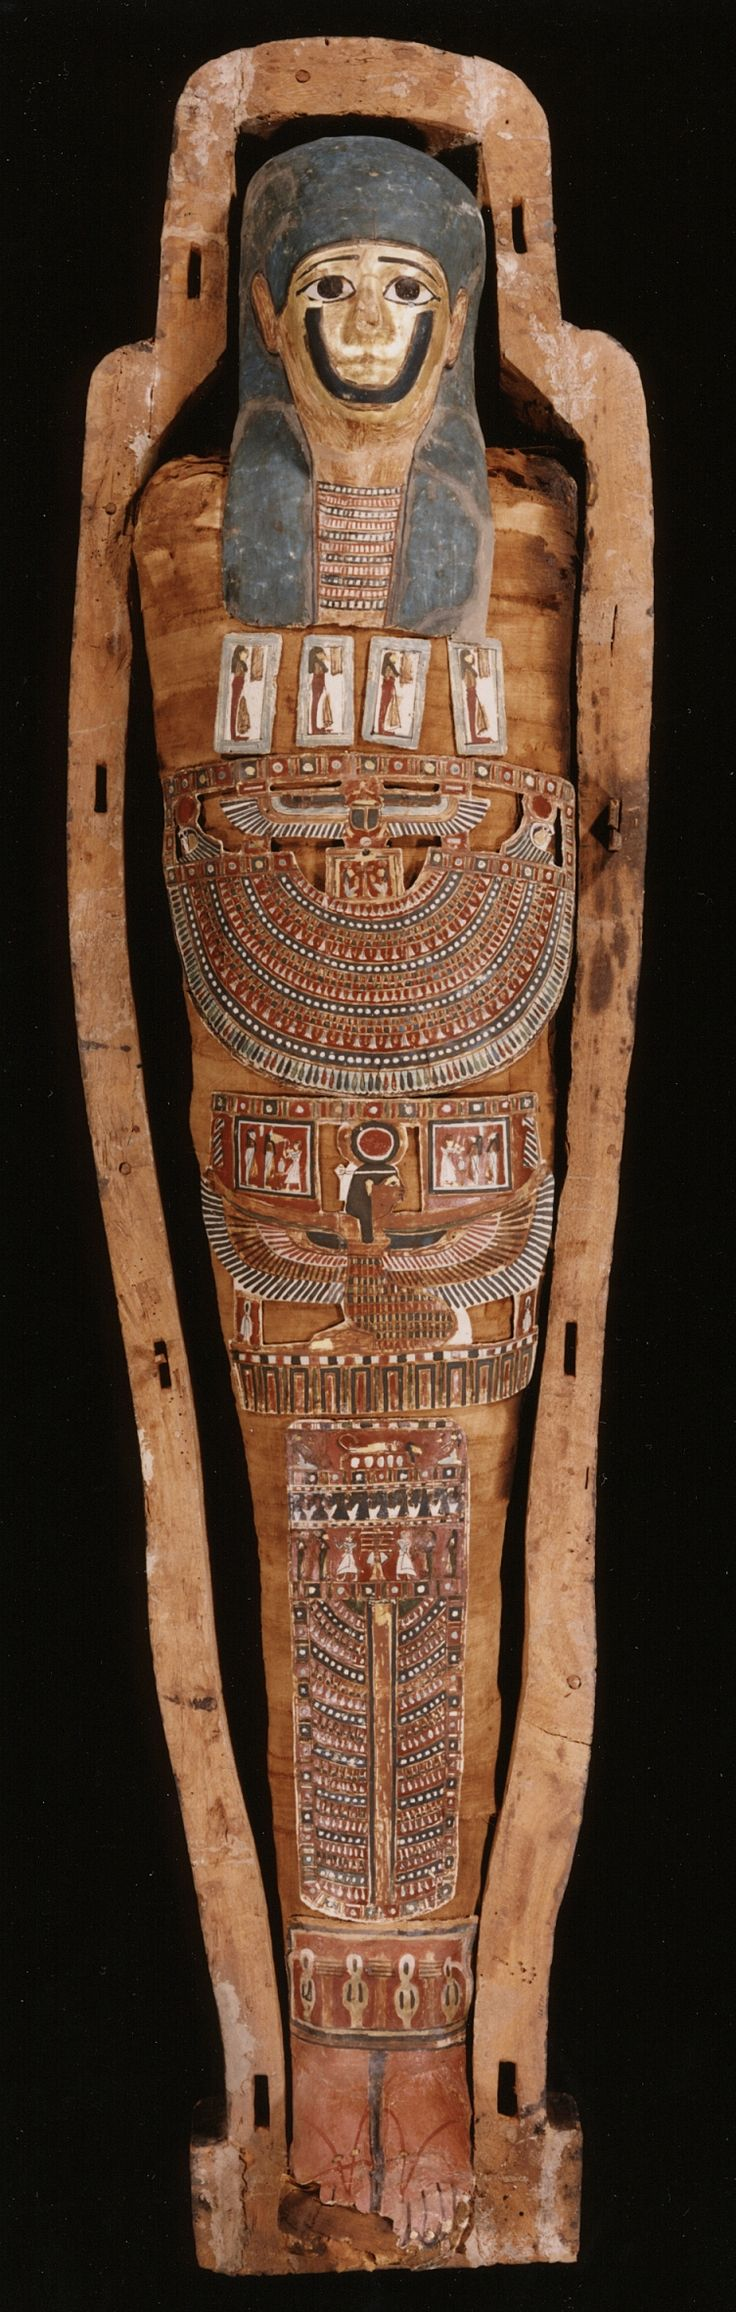 Egyptian mummy and coffin, 150 BC-50 A.D. Within these wrappings is the mummified body of a man who died 2,000 years ago. (Photo by Chip Clark)